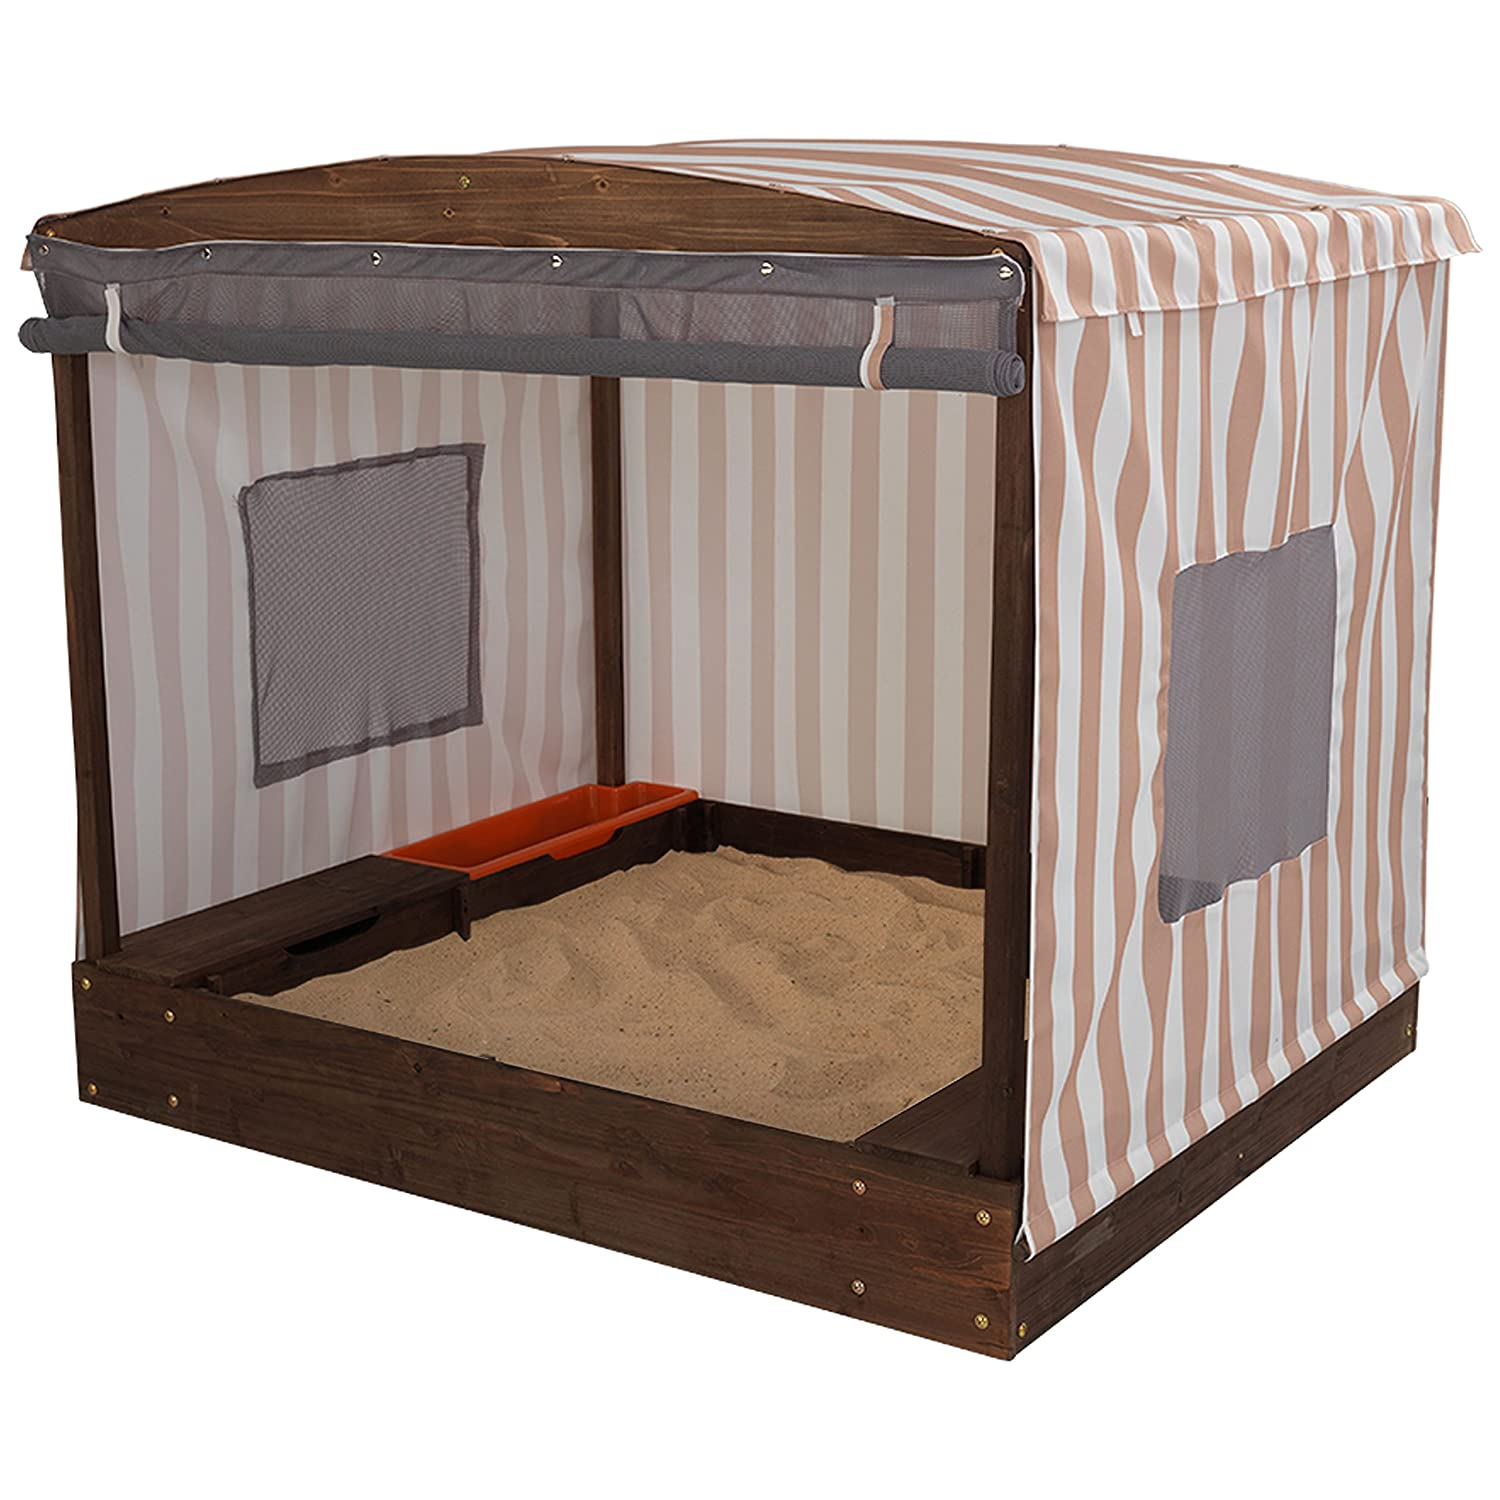 amazon com kidkraft 00 cabana sandbox oatmeal and white stripes